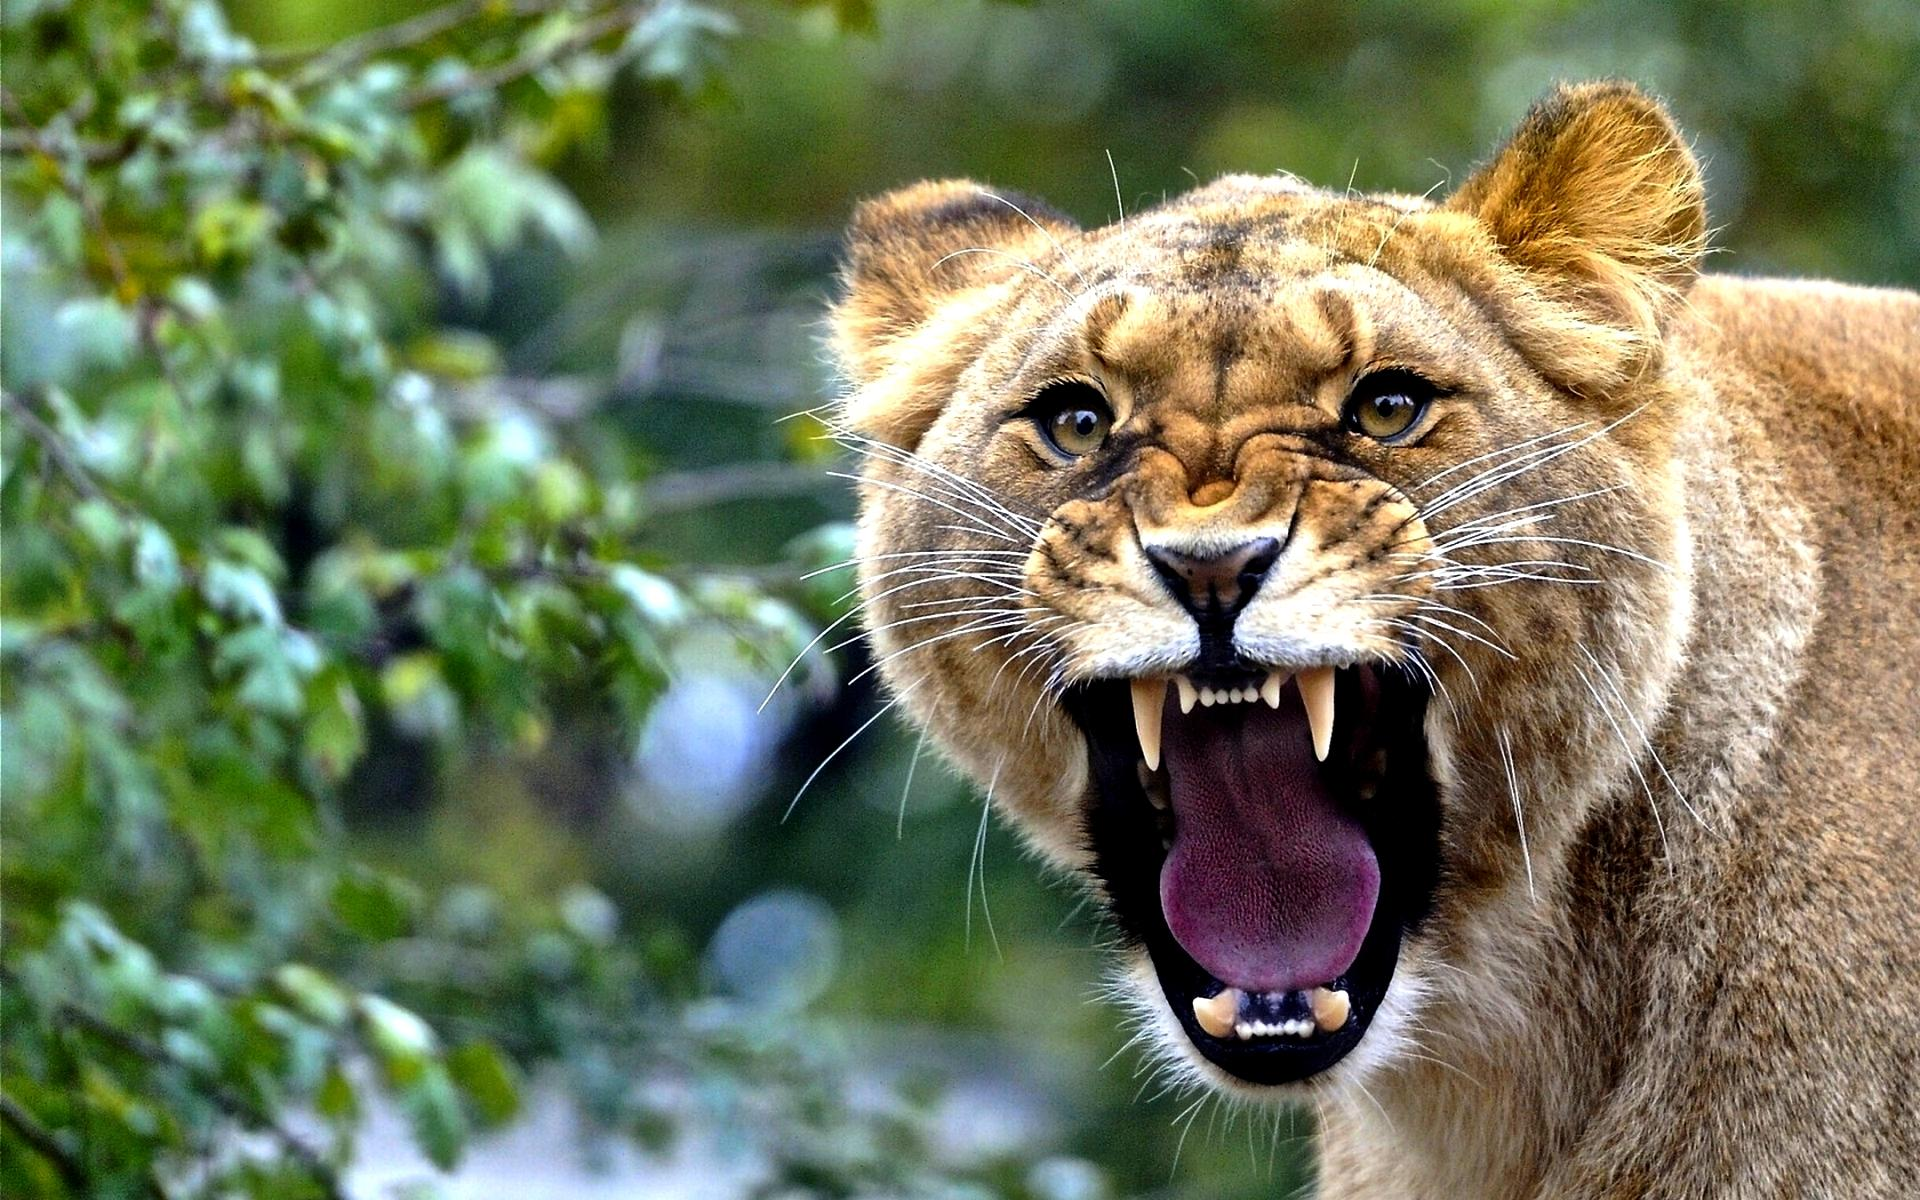 lioness wallpaper roar - HD Desktop Wallpapers | 4k HD